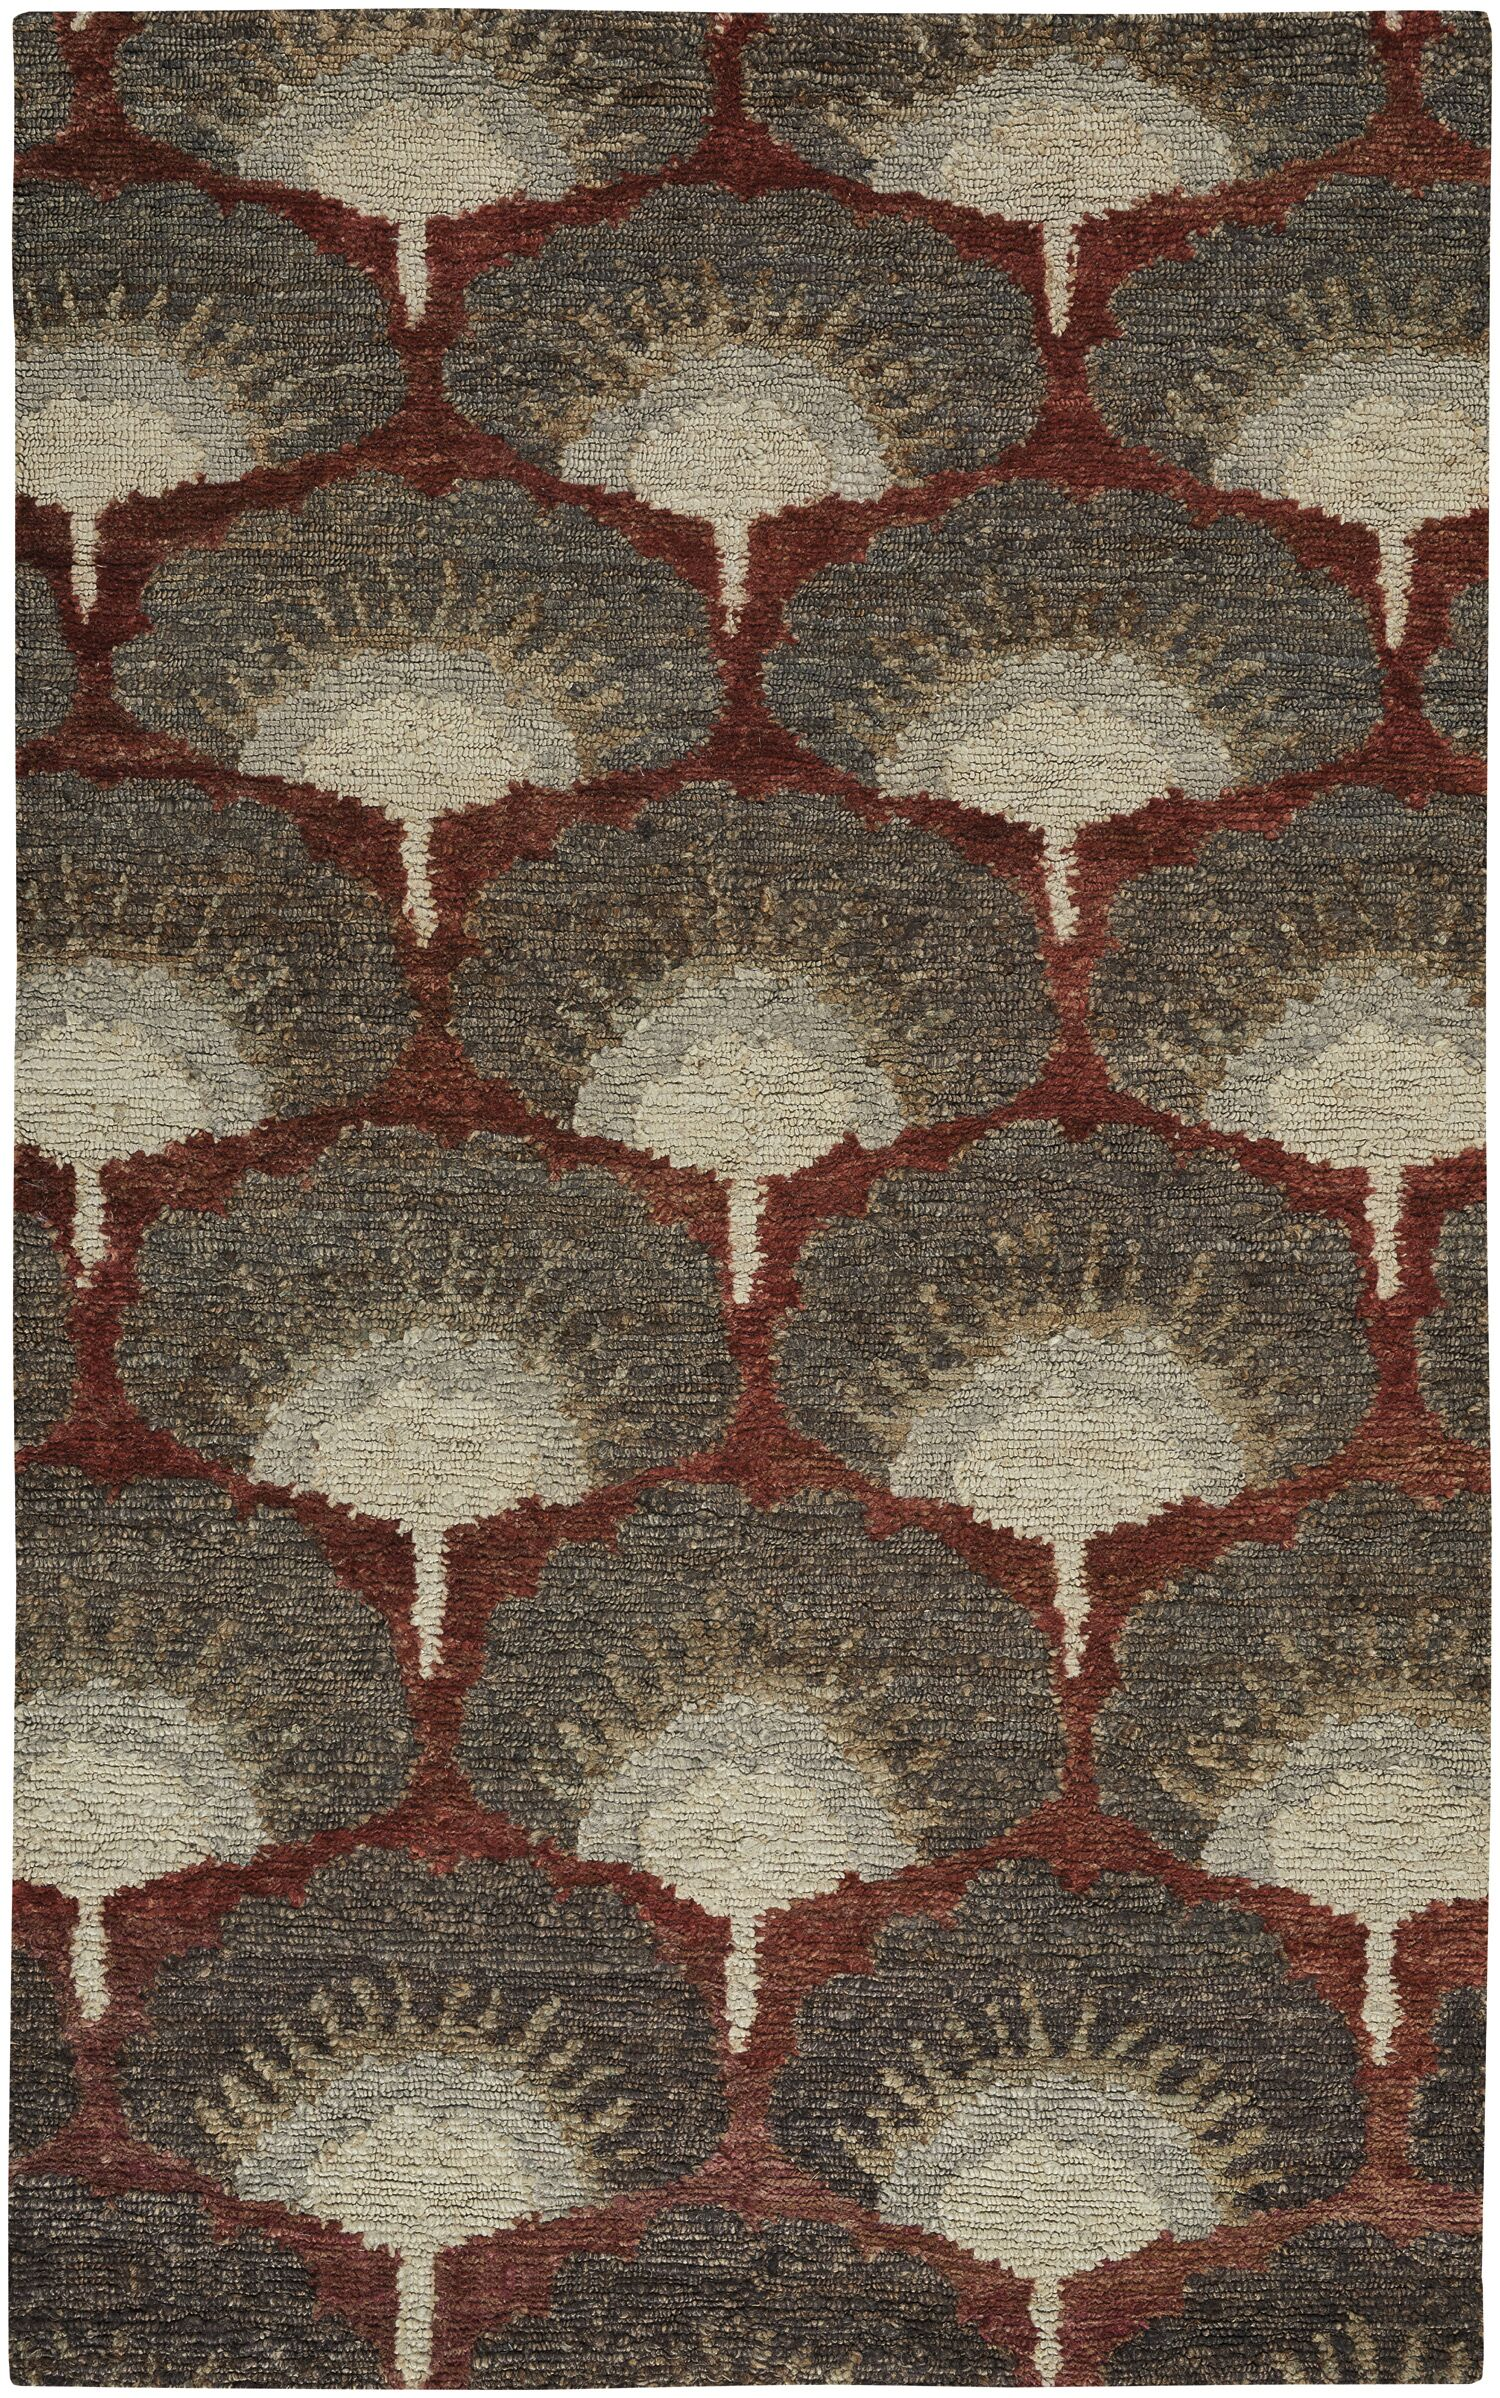 Chappell Hand-Knotted Red/Gray Area Rug Rug Size: 9' x 12'